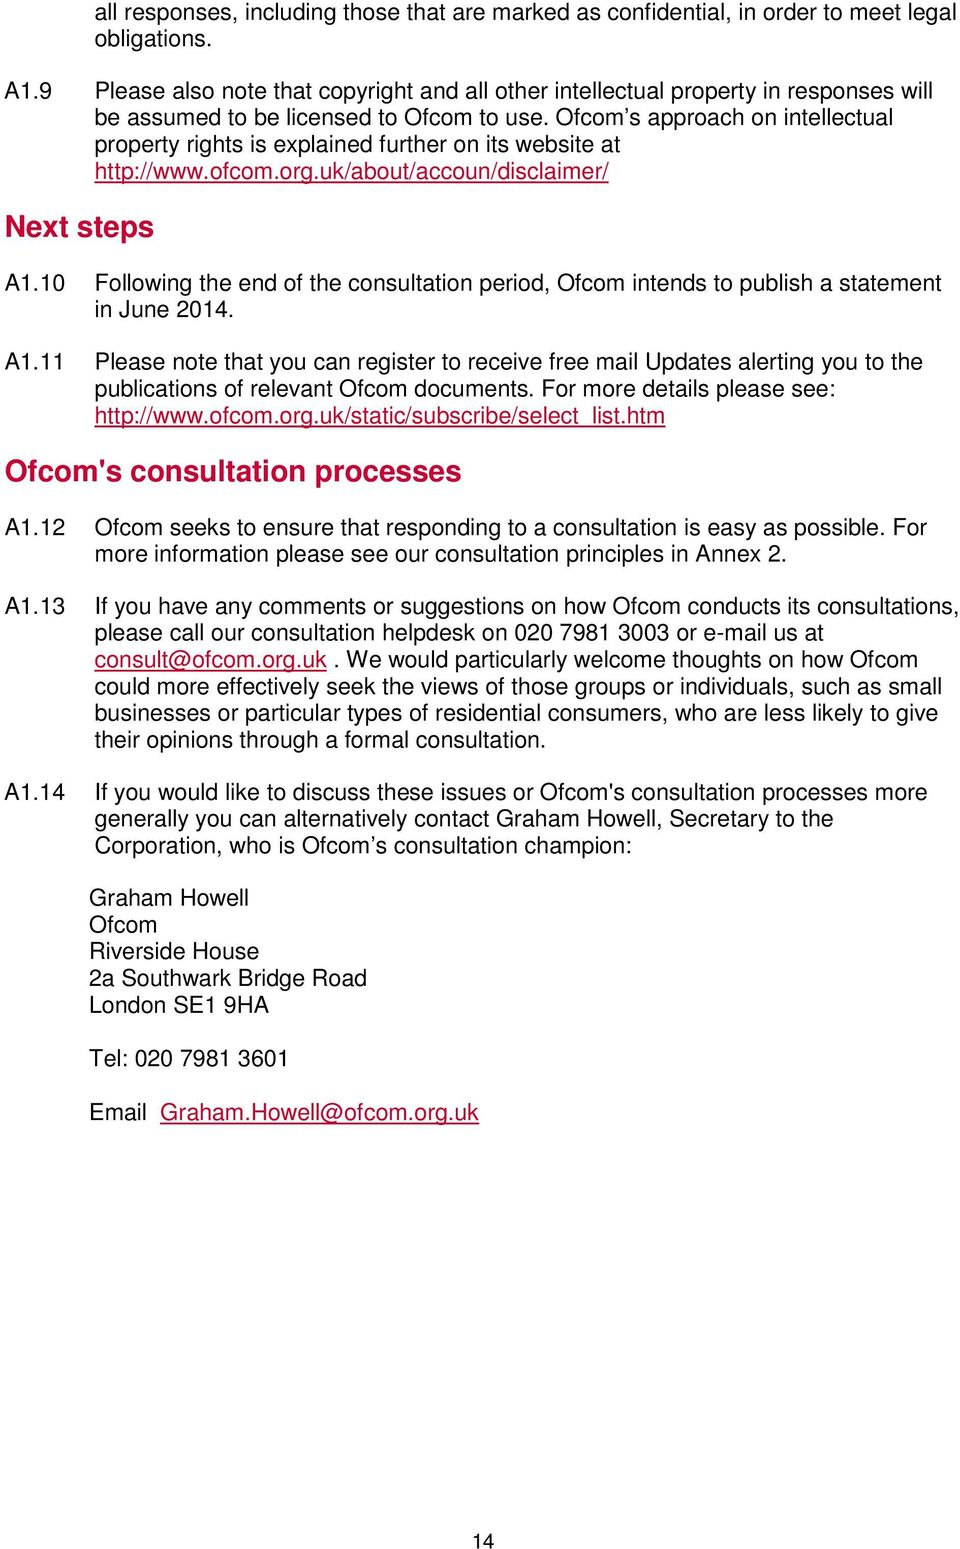 Ofcom s approach on intellectual property rights is explained further on its website at http://www.ofcom.org.uk/about/accoun/disclaimer/ Next steps A1.